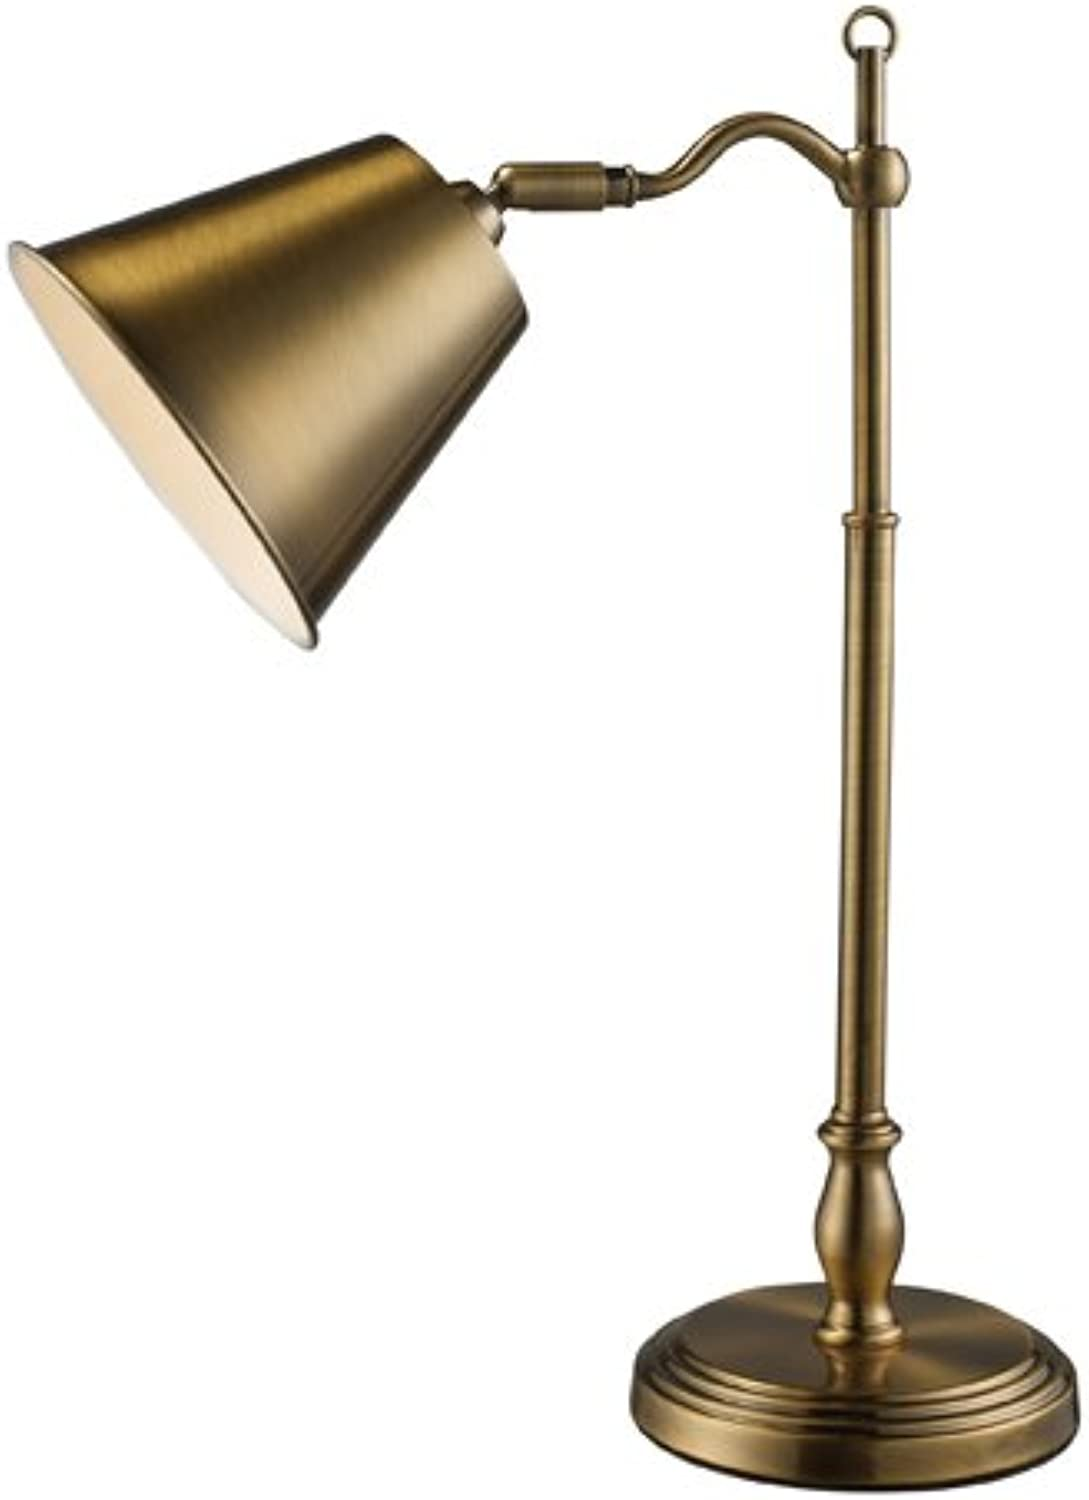 Dimond D1837 11-Inch Width by 19-Inch Height Hamilton Desk Lamp in Antique Brass with Antique Brass Shade